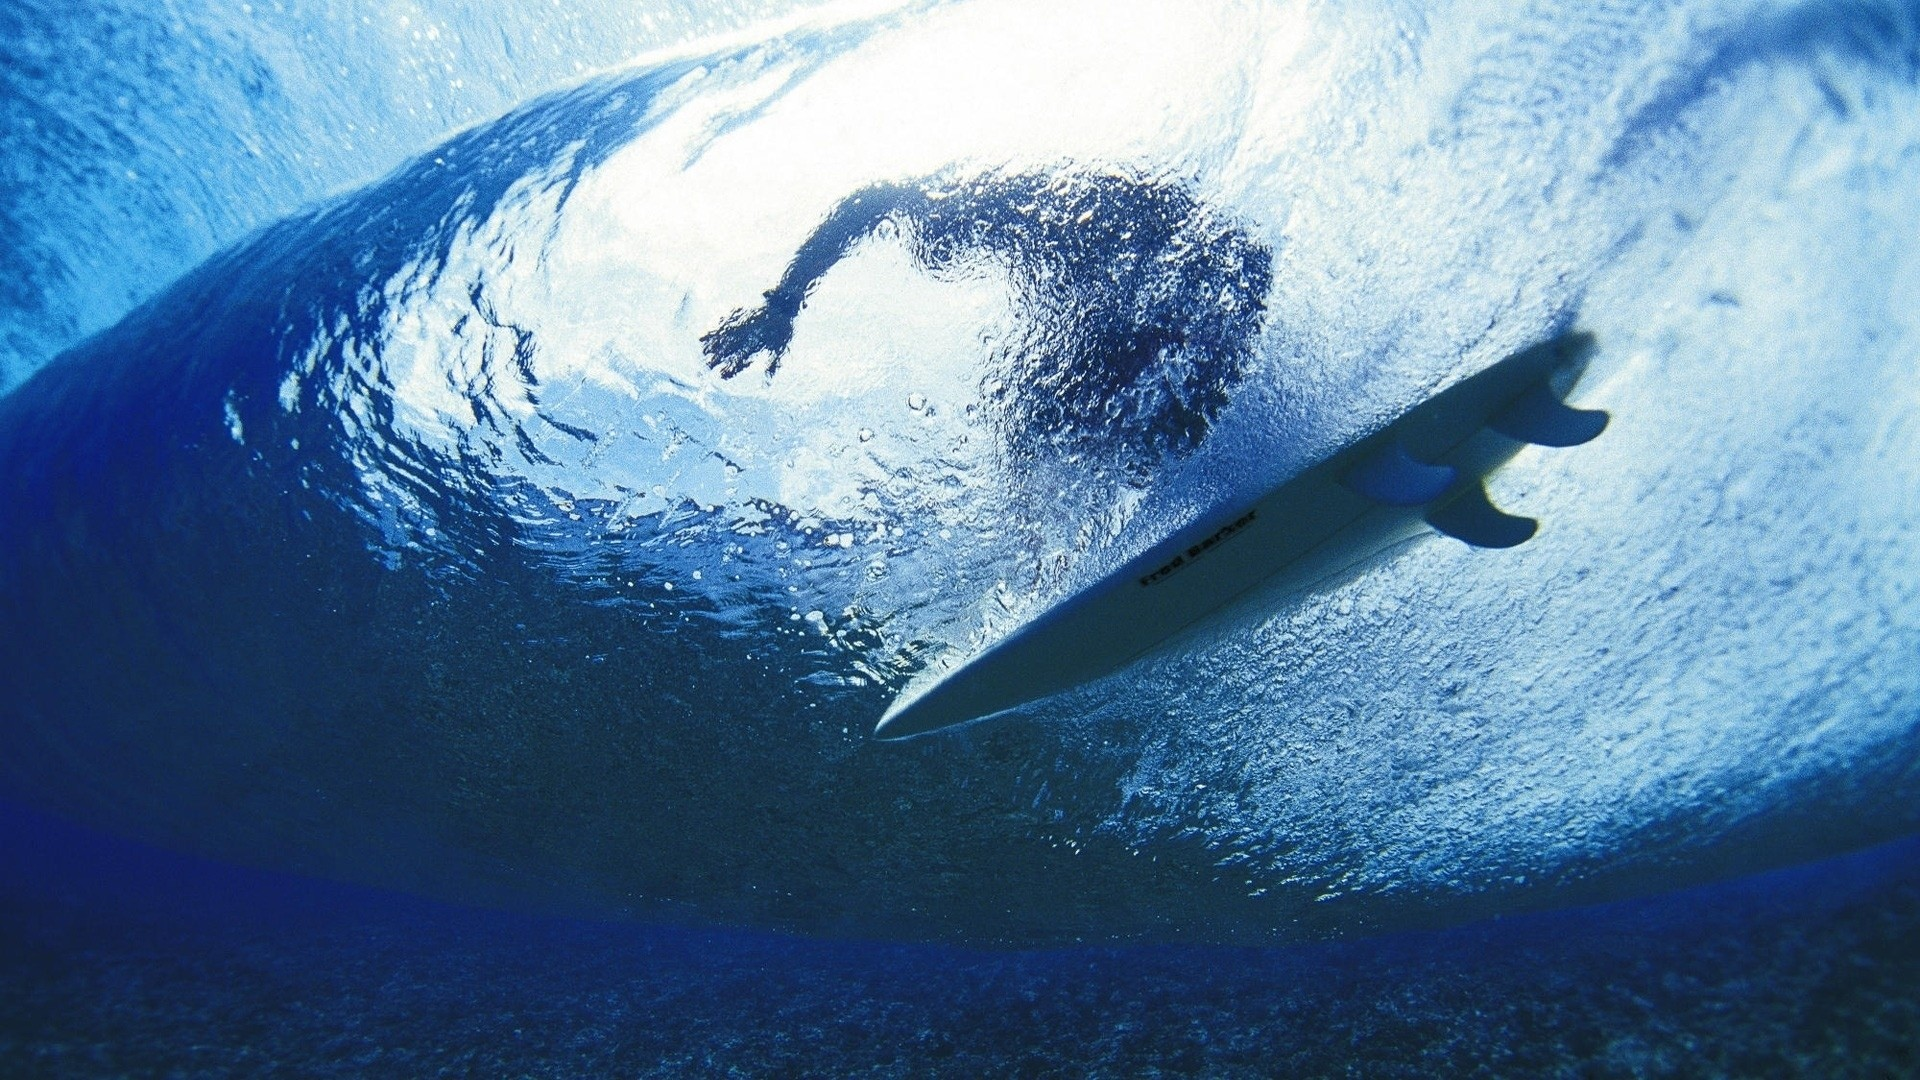 Res: 1920x1080, Handsome Surfing Wallpaper Hd